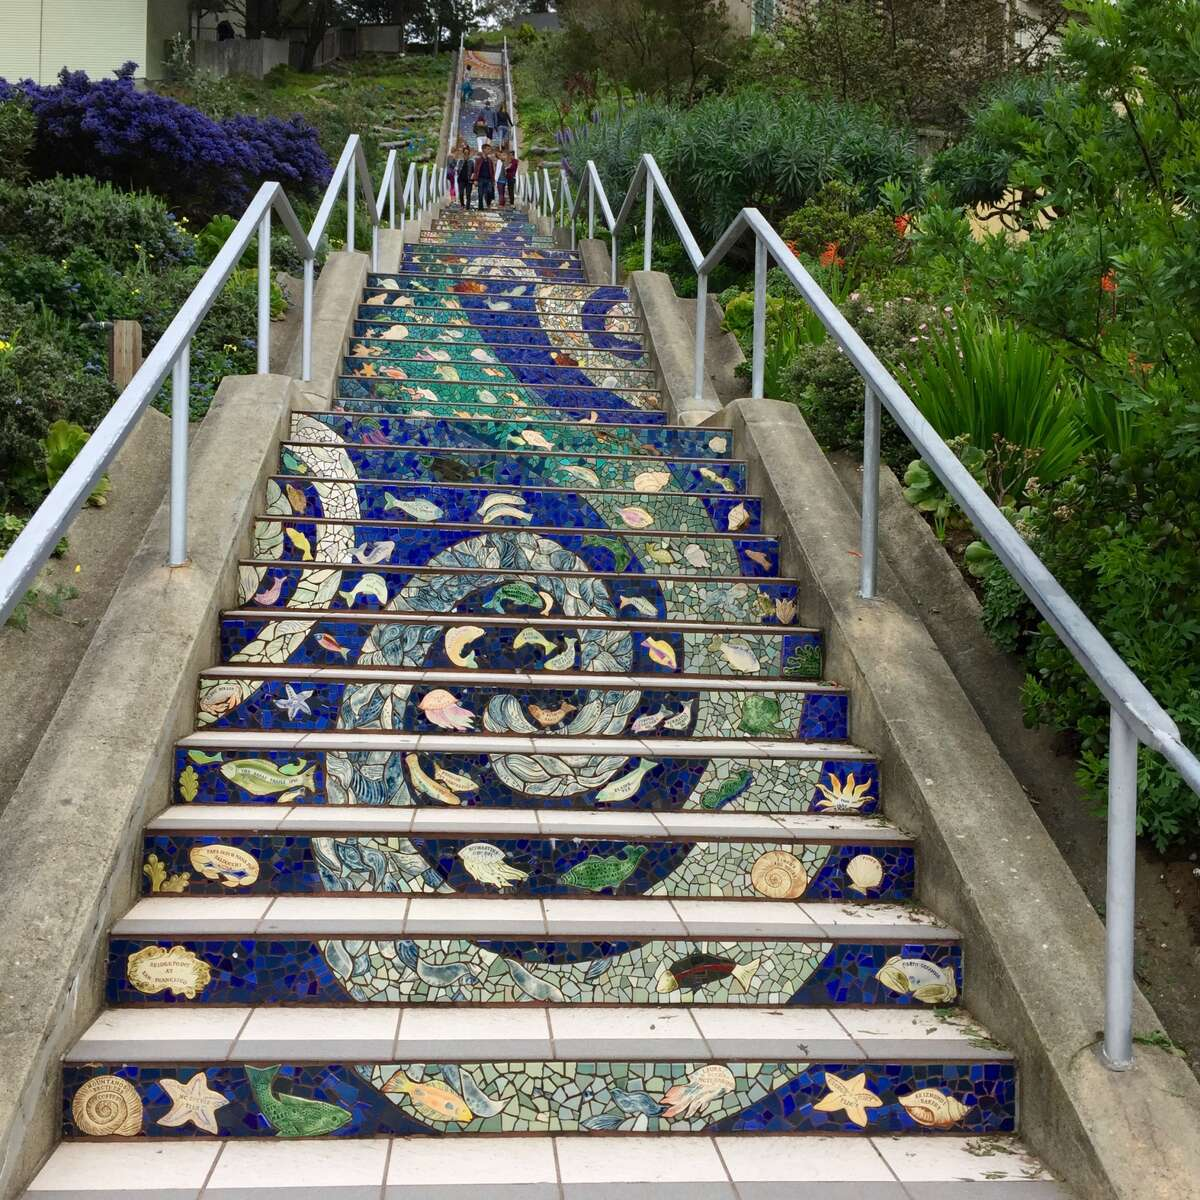 Click through this slideshow to see some of our favorite things to do for fun that are off the beaten path in the Bay Area, including this special mosaic staircase in San Francisco, created by artists Aileen Barr and Colette Crutcher. (And this may actually be one of the more well-known things to do in this compilation.)